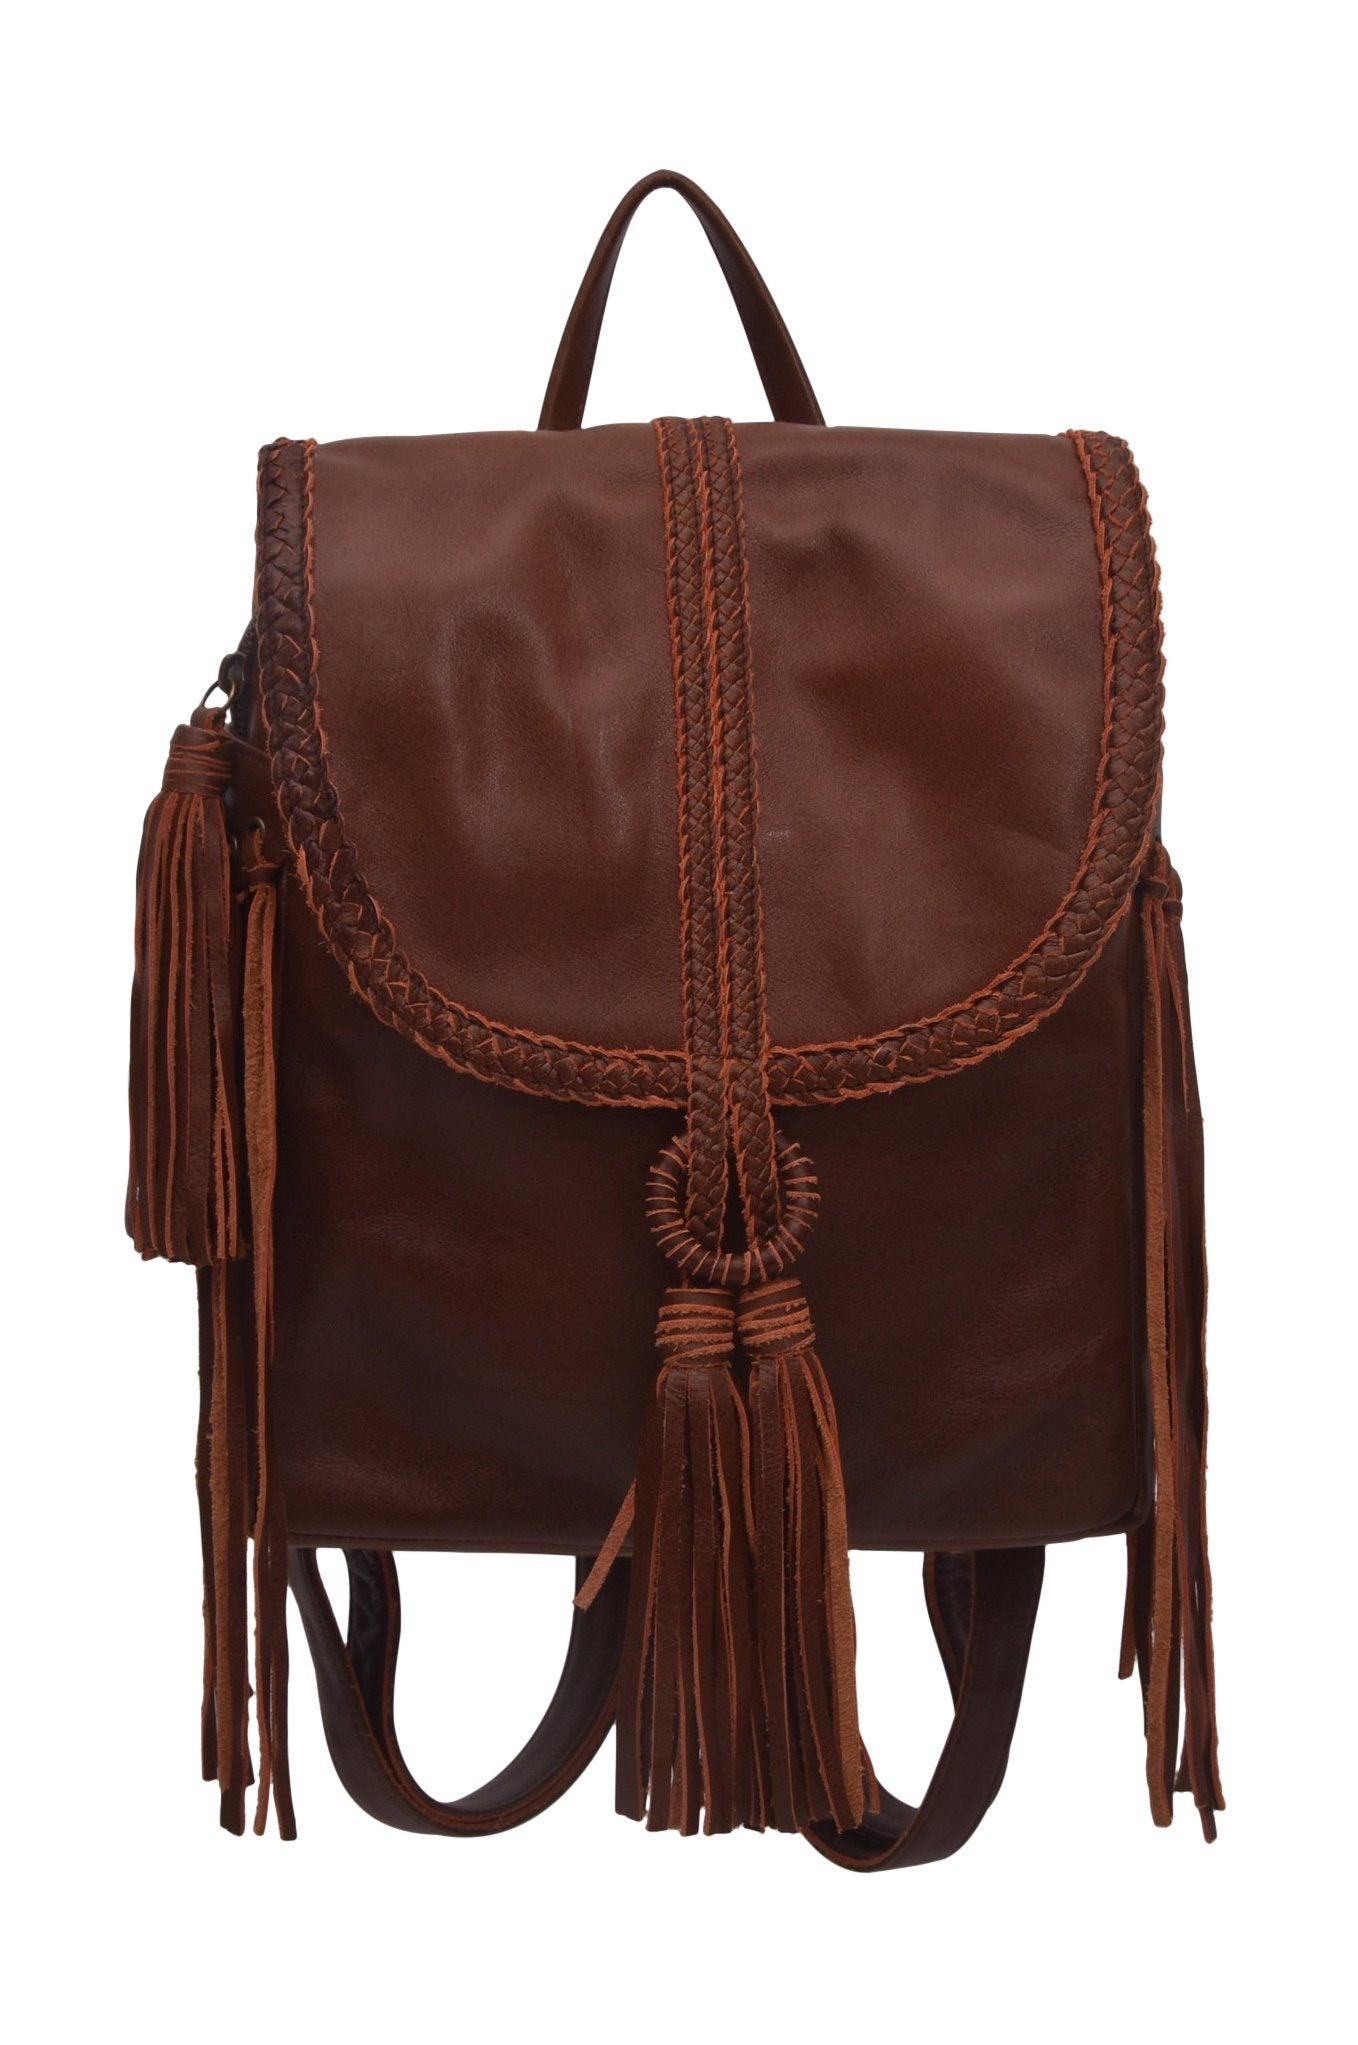 04463d603 Home Leather bag Sandy Bay. Handmade bohemian style leather backpack